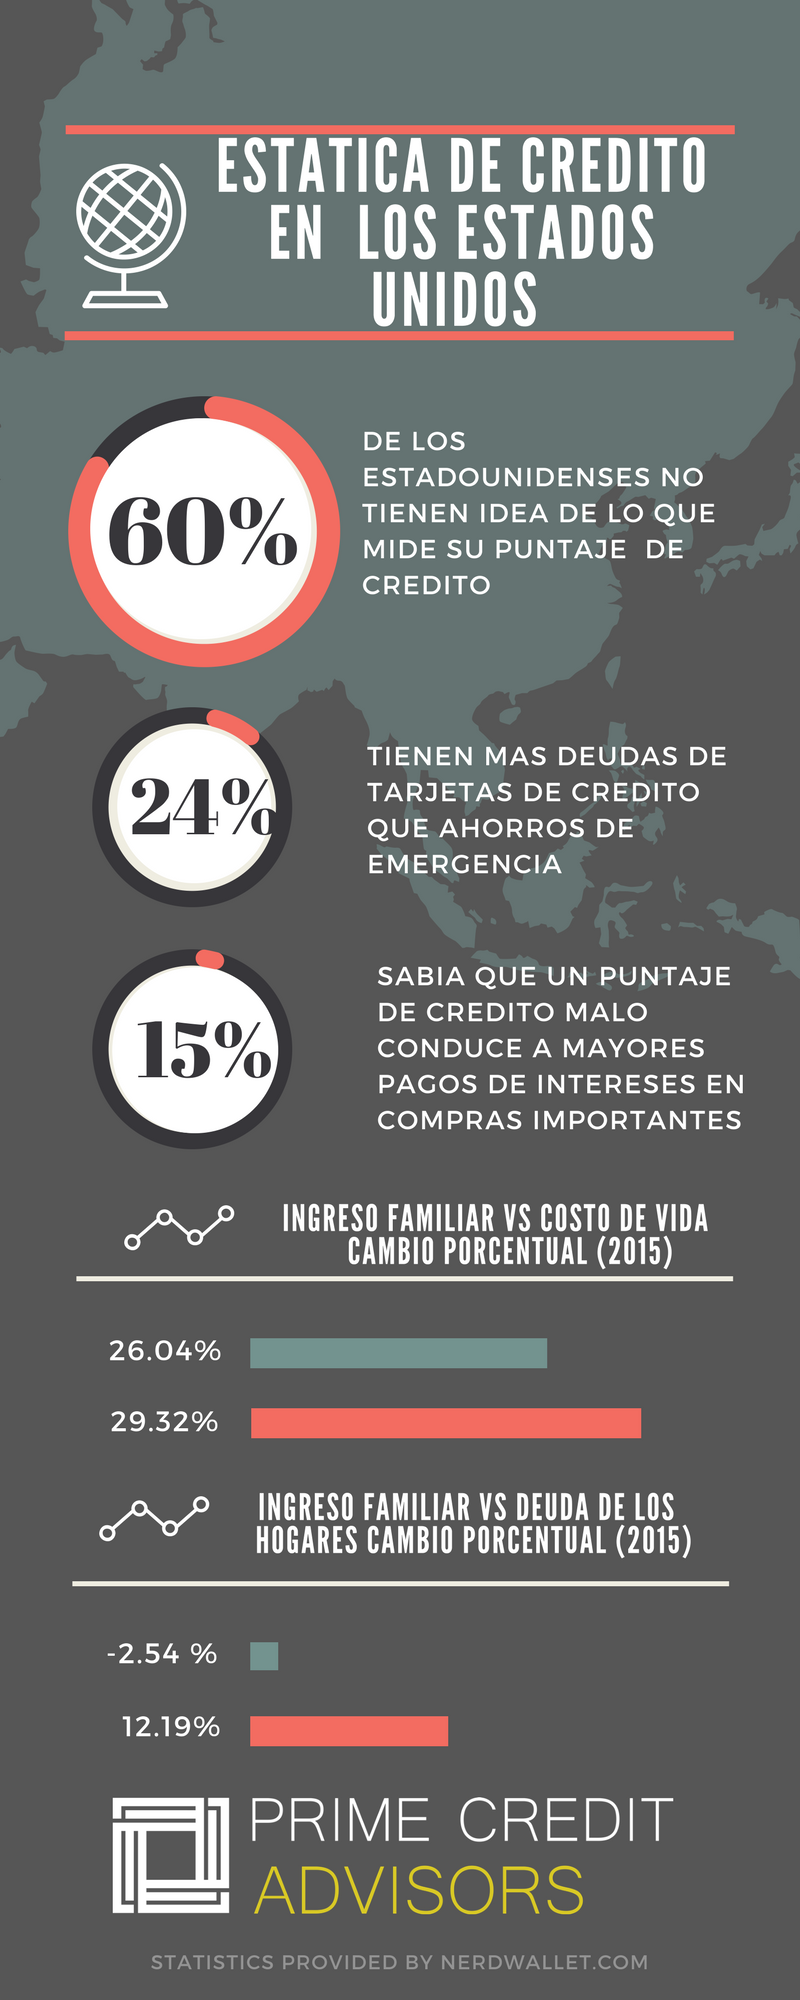 spanish statistics in the US